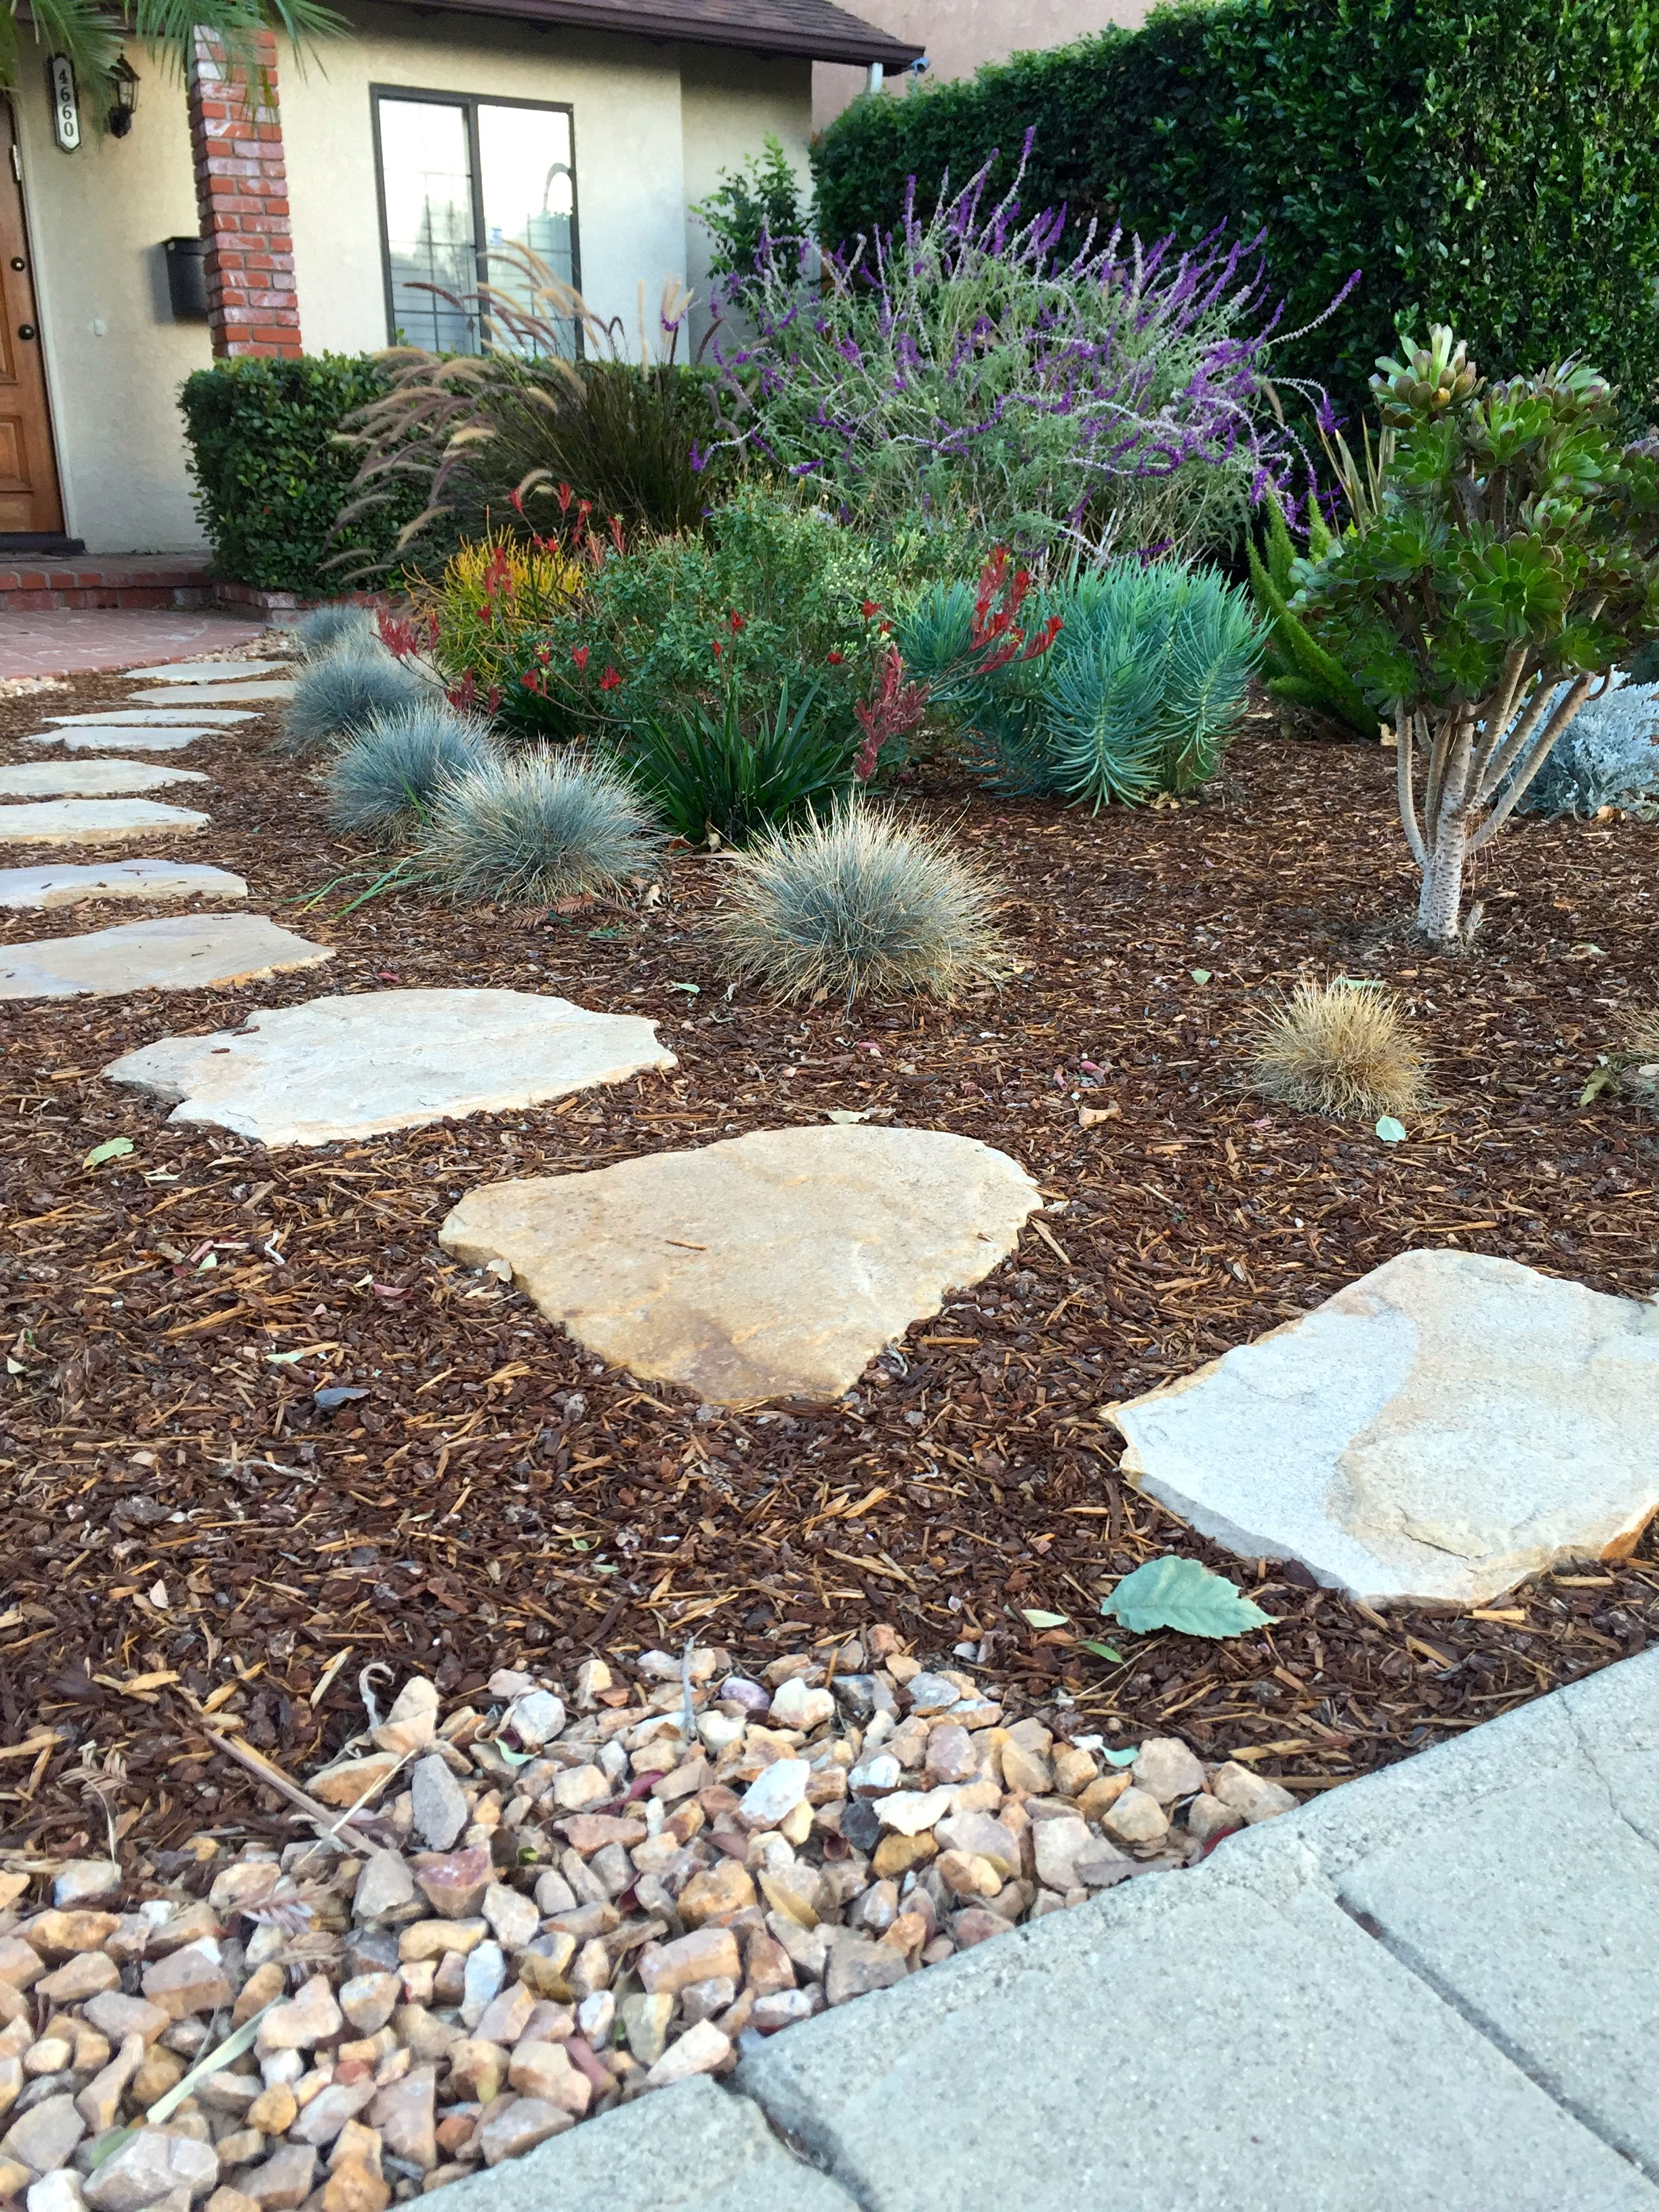 paving stone pathway surrounded